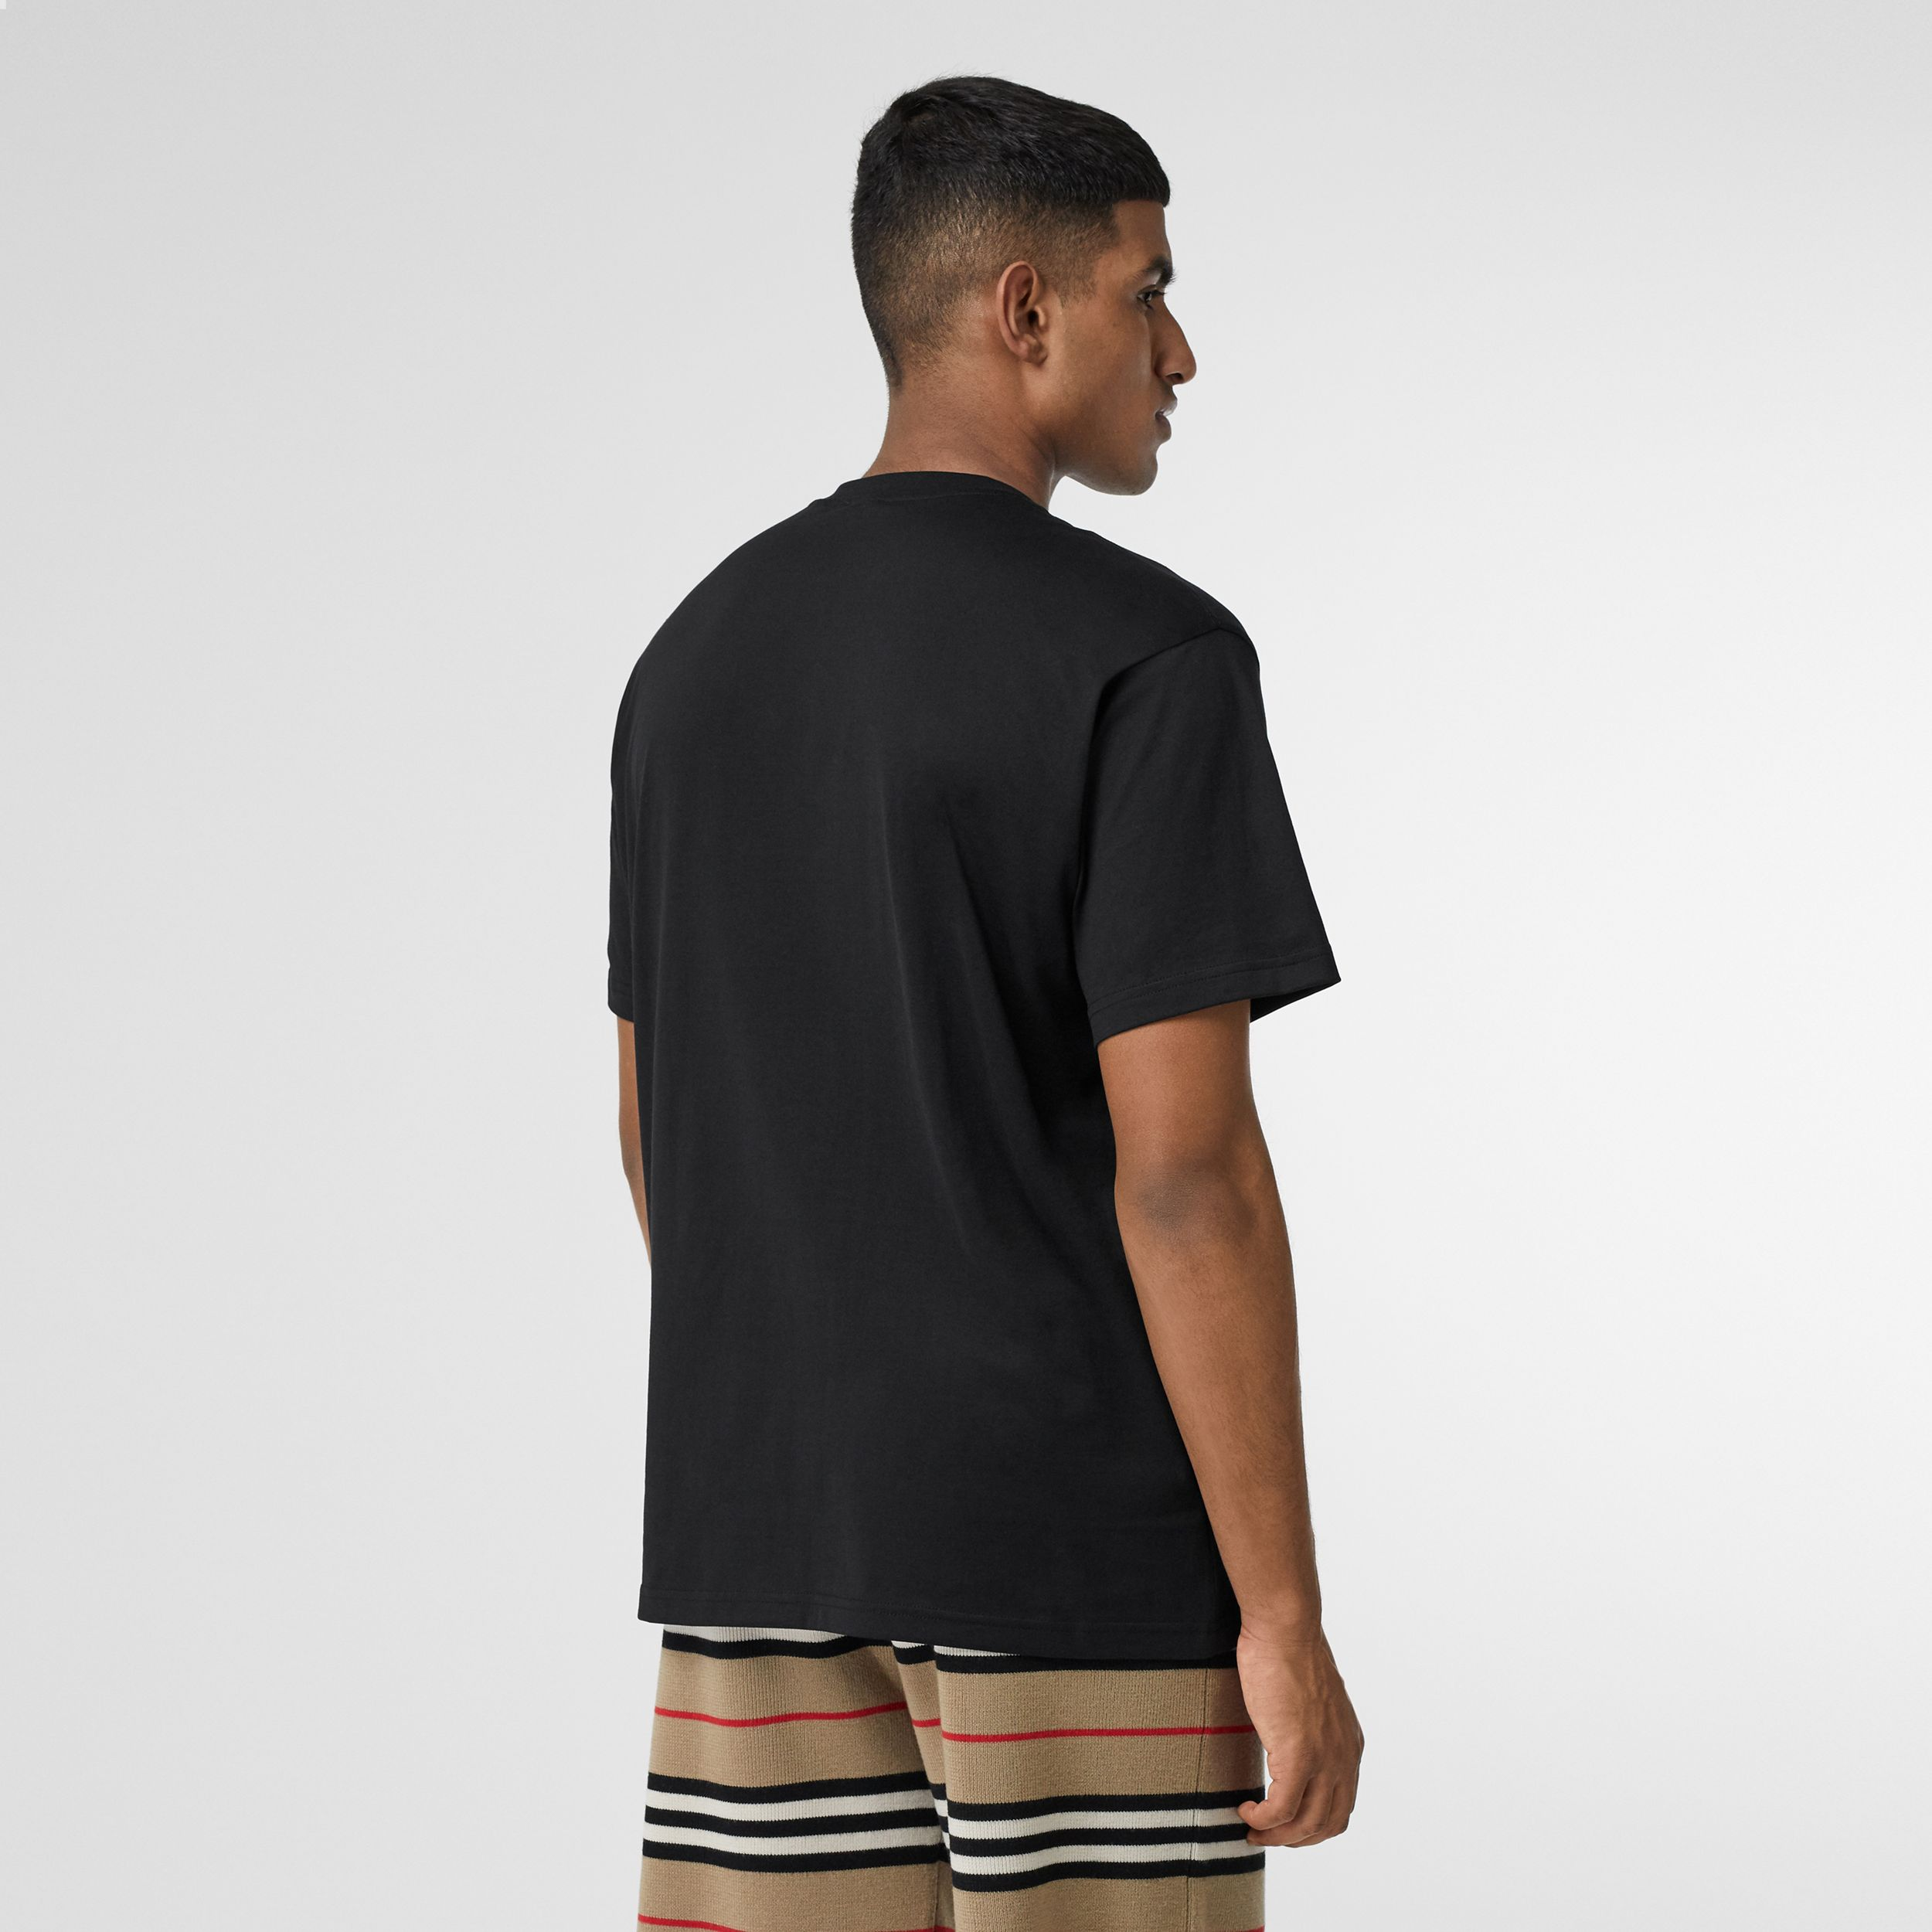 Monogram Motif Cotton Oversized T-shirt in Black - Men | Burberry Hong Kong S.A.R. - 3